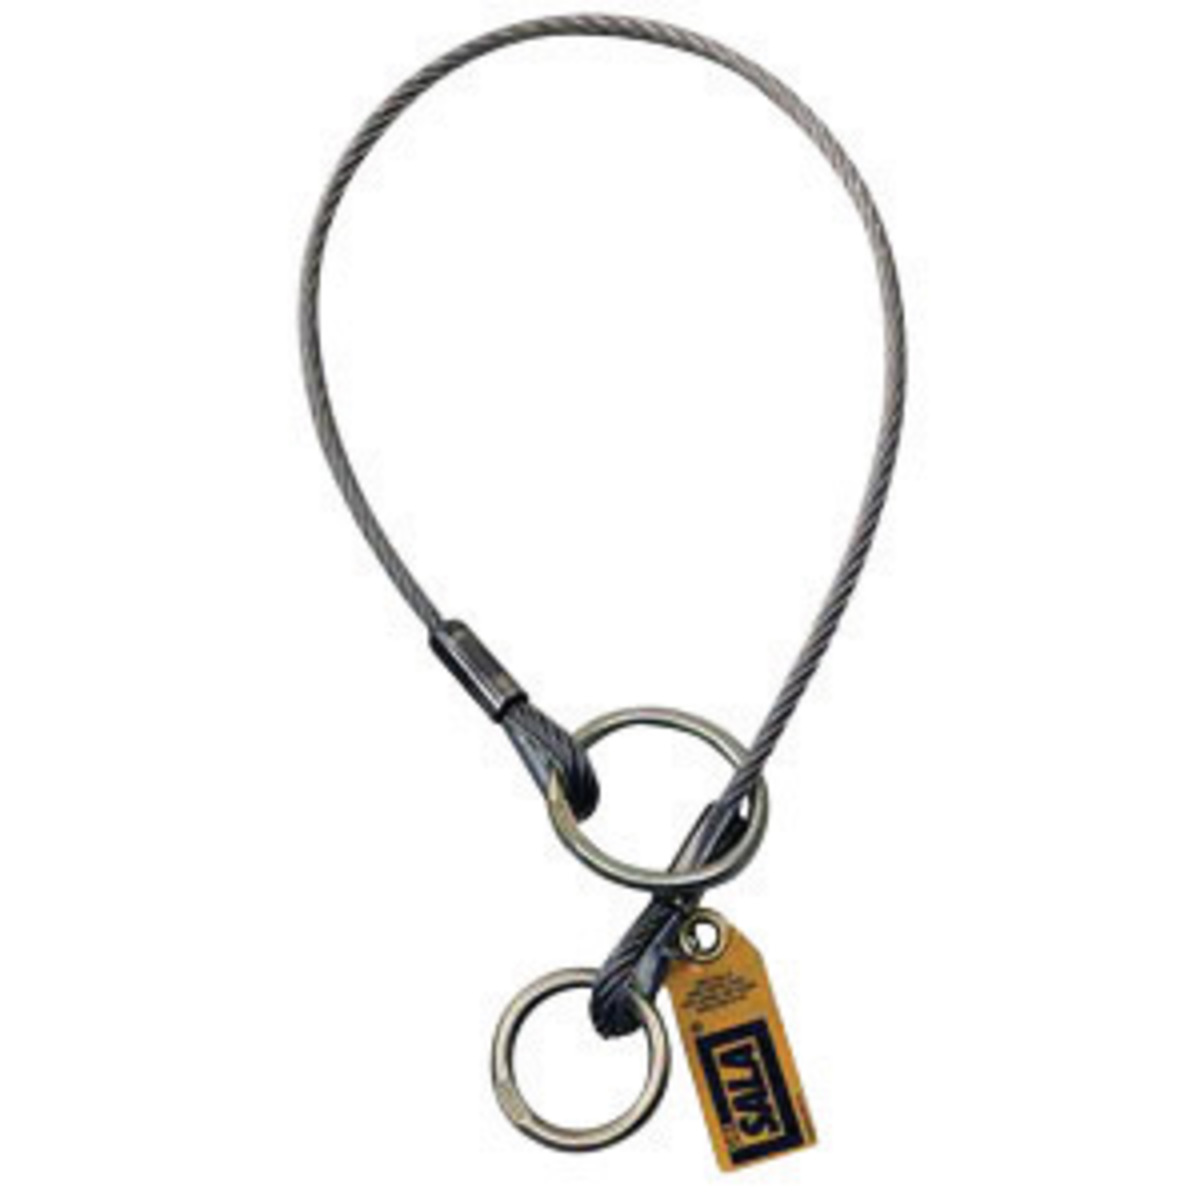 Dbi Sala 6 3 8 Stainless Steel Cable Choker With